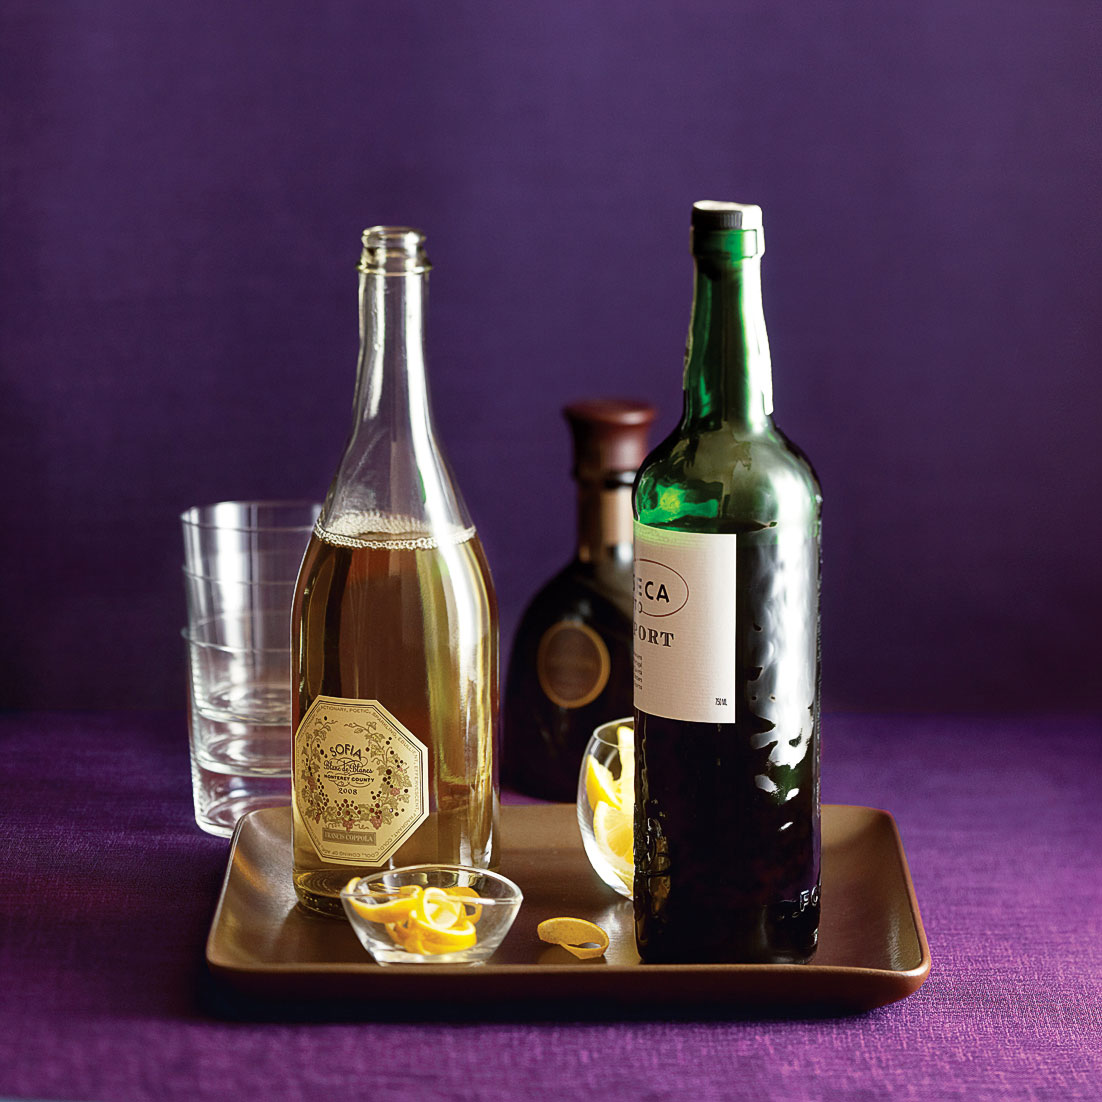 Dessert wine makes waves